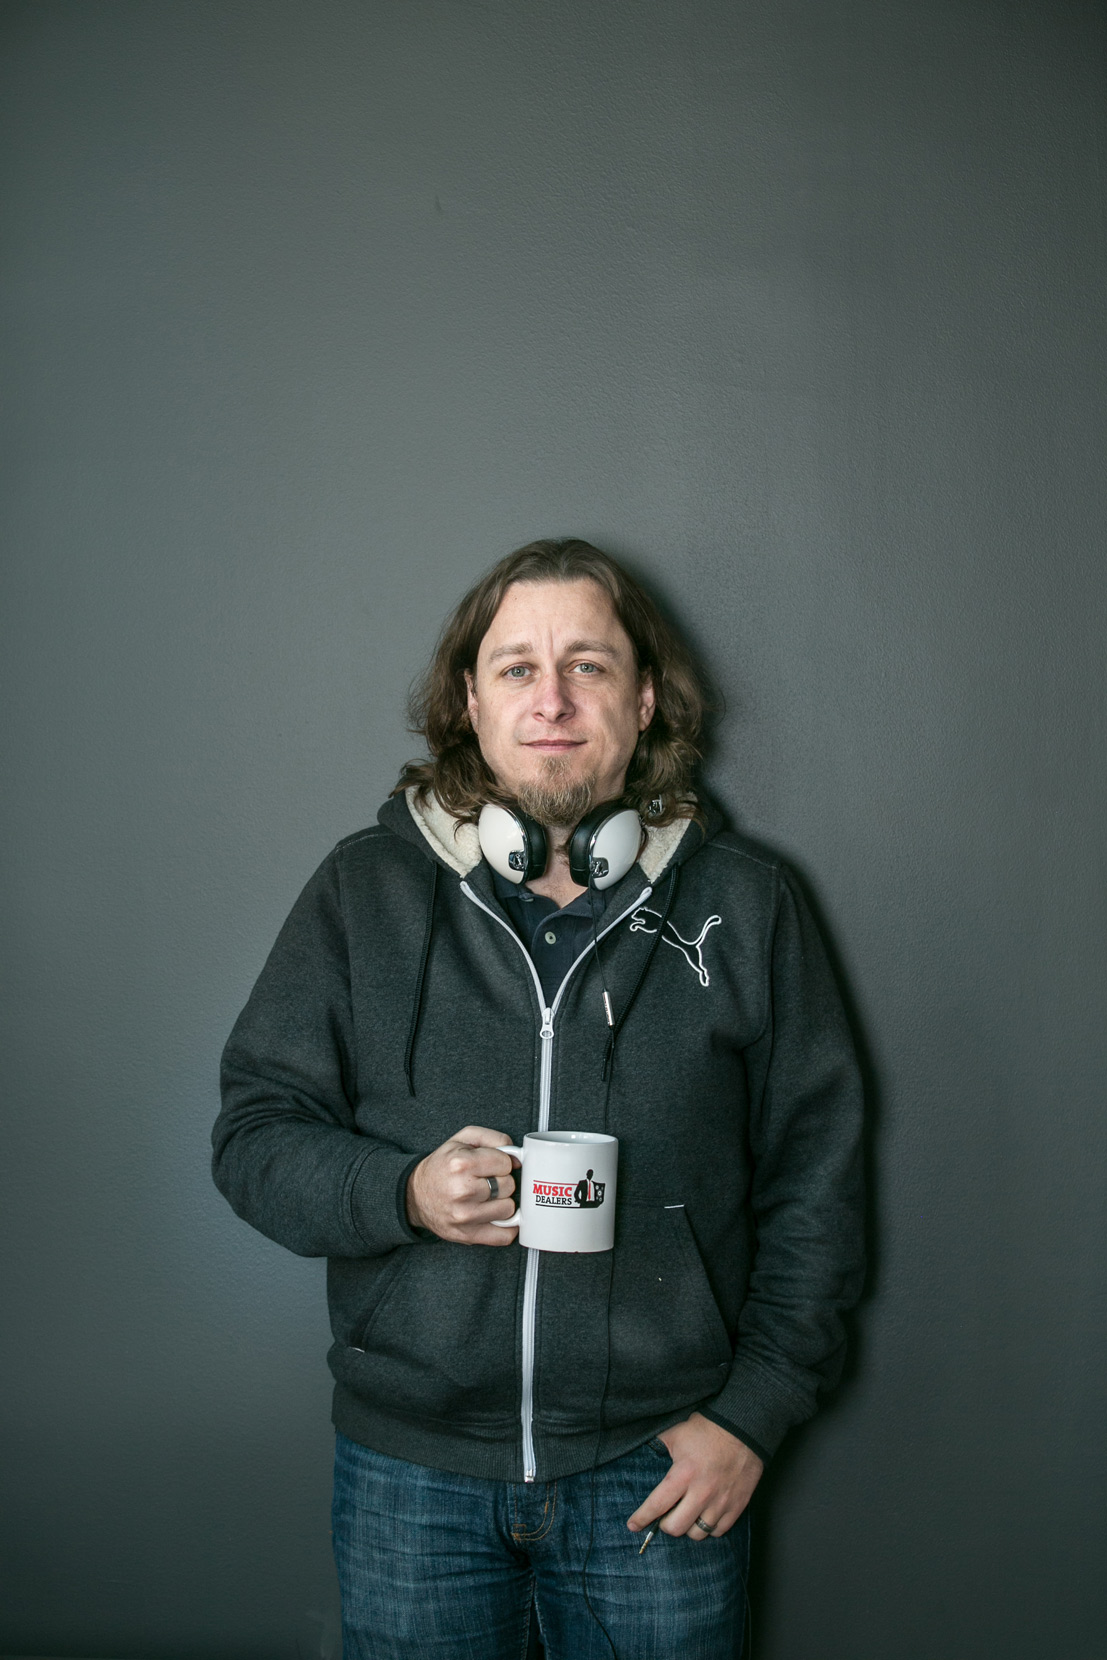 portrait-of-a-man-holding-a-coffee-mug